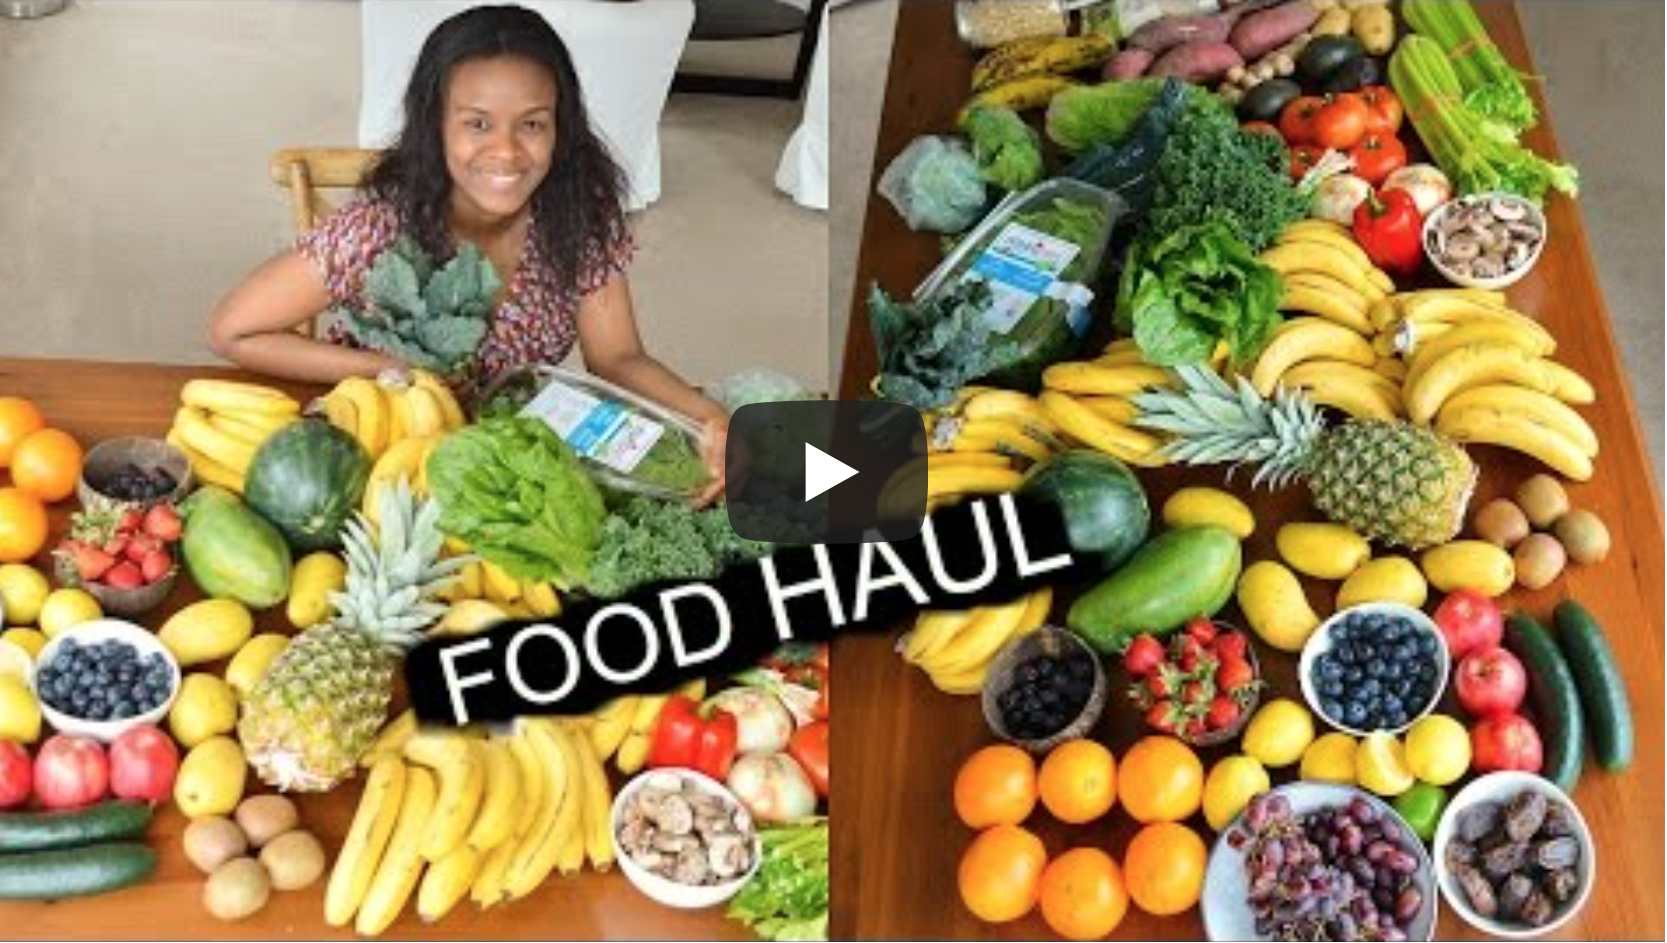 My weekly High Raw Food stash + how I use it | Vegan Food haul | VeganFlix